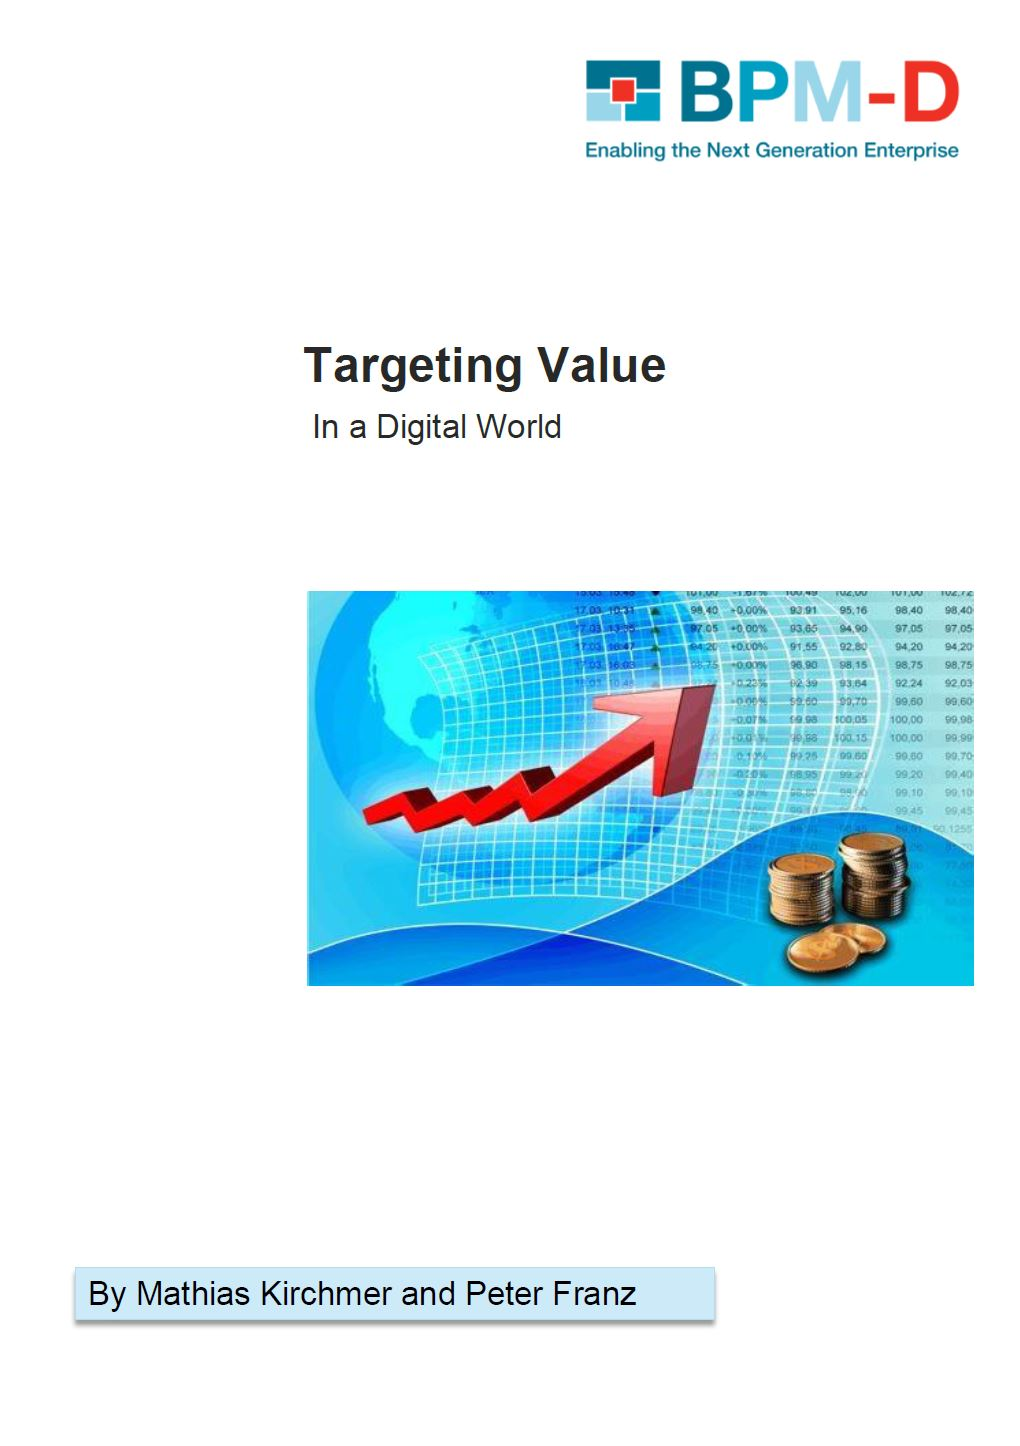 Targeting Value in a Digital World